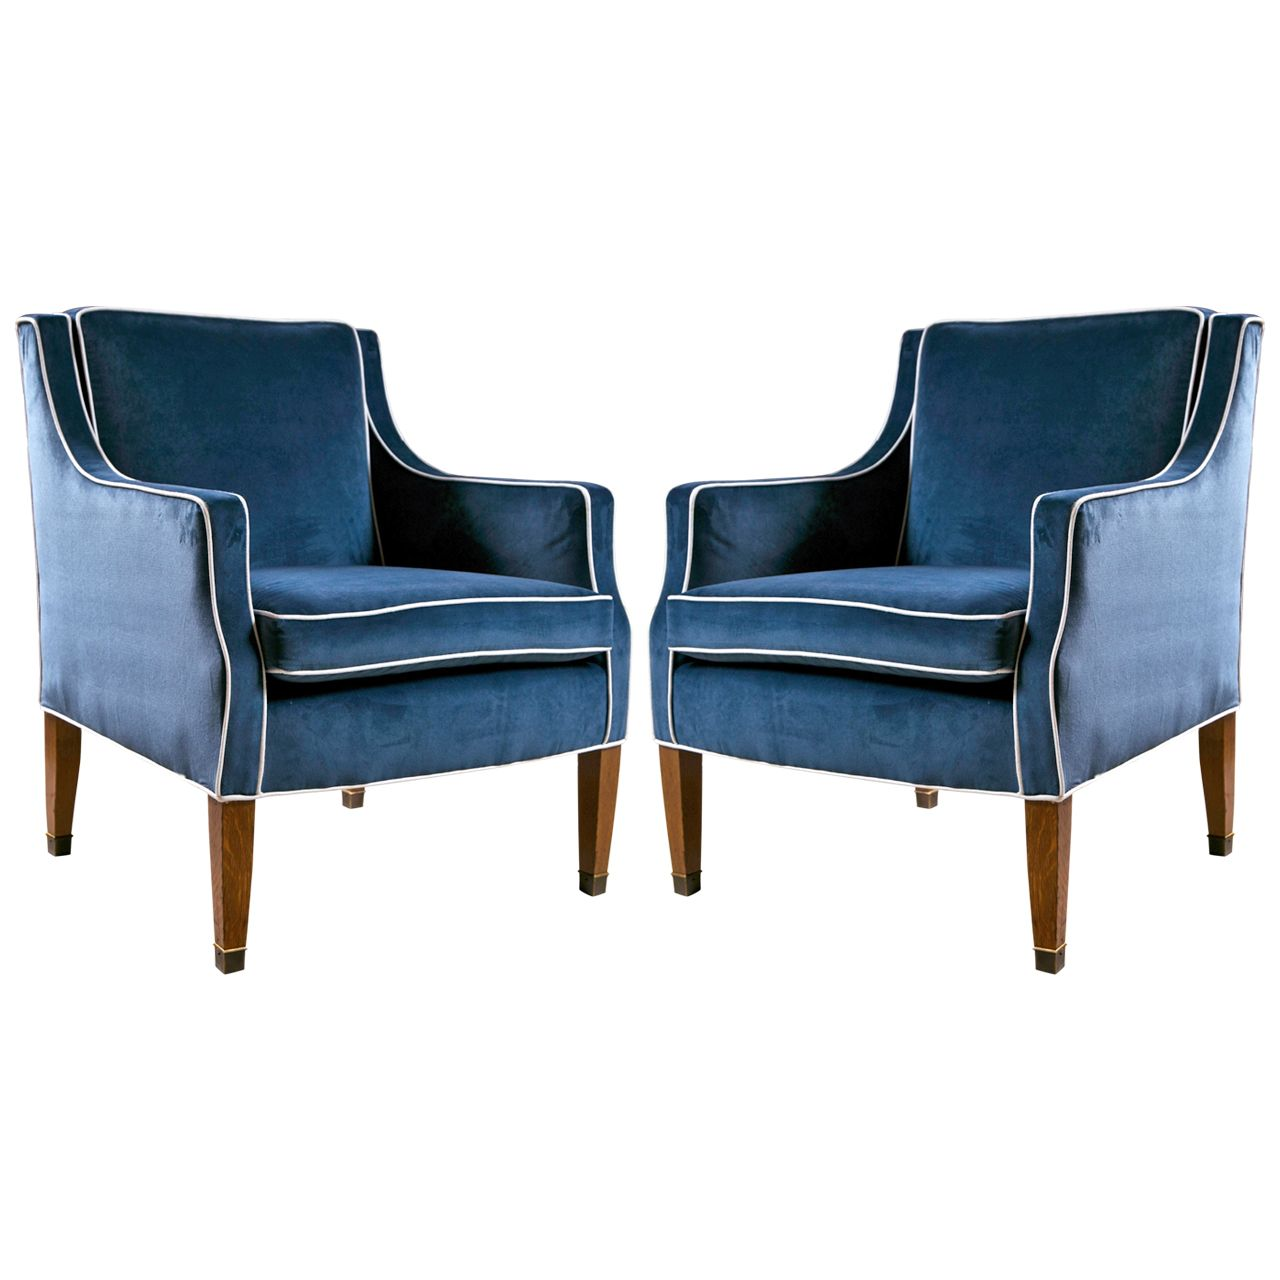 Mid Century Club Chairs With Blue Velvet Upholstery And Contrast White Piping From A Unique Collection Of Antique Club Chairs Upholstery Upholstery Armchair